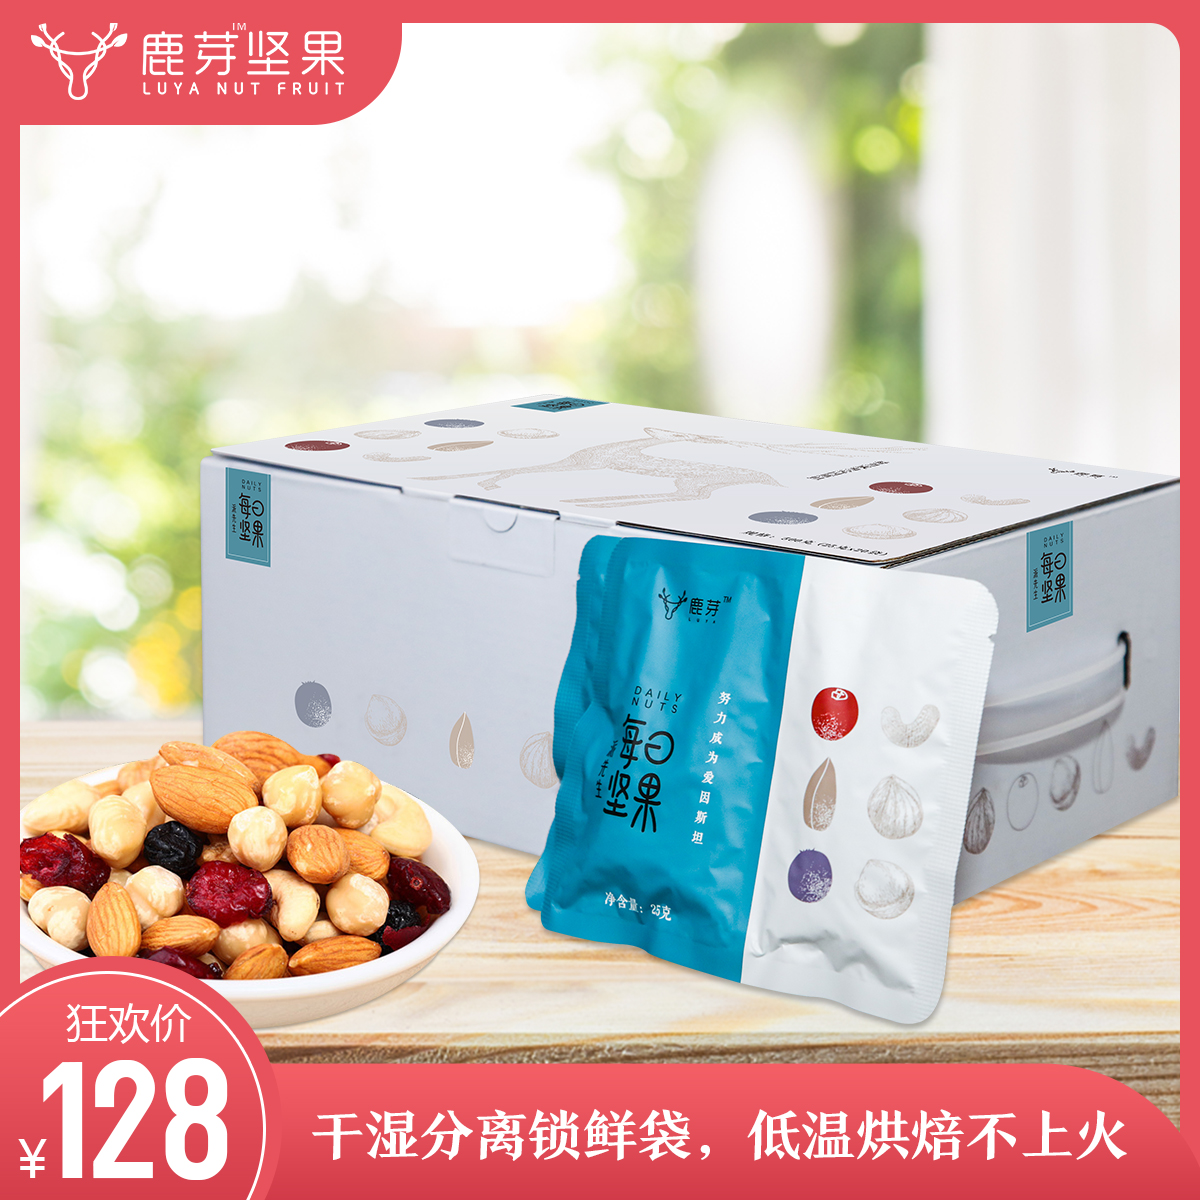 [618 promotion] Mr. Pai, 500 grams of imported nuts per day